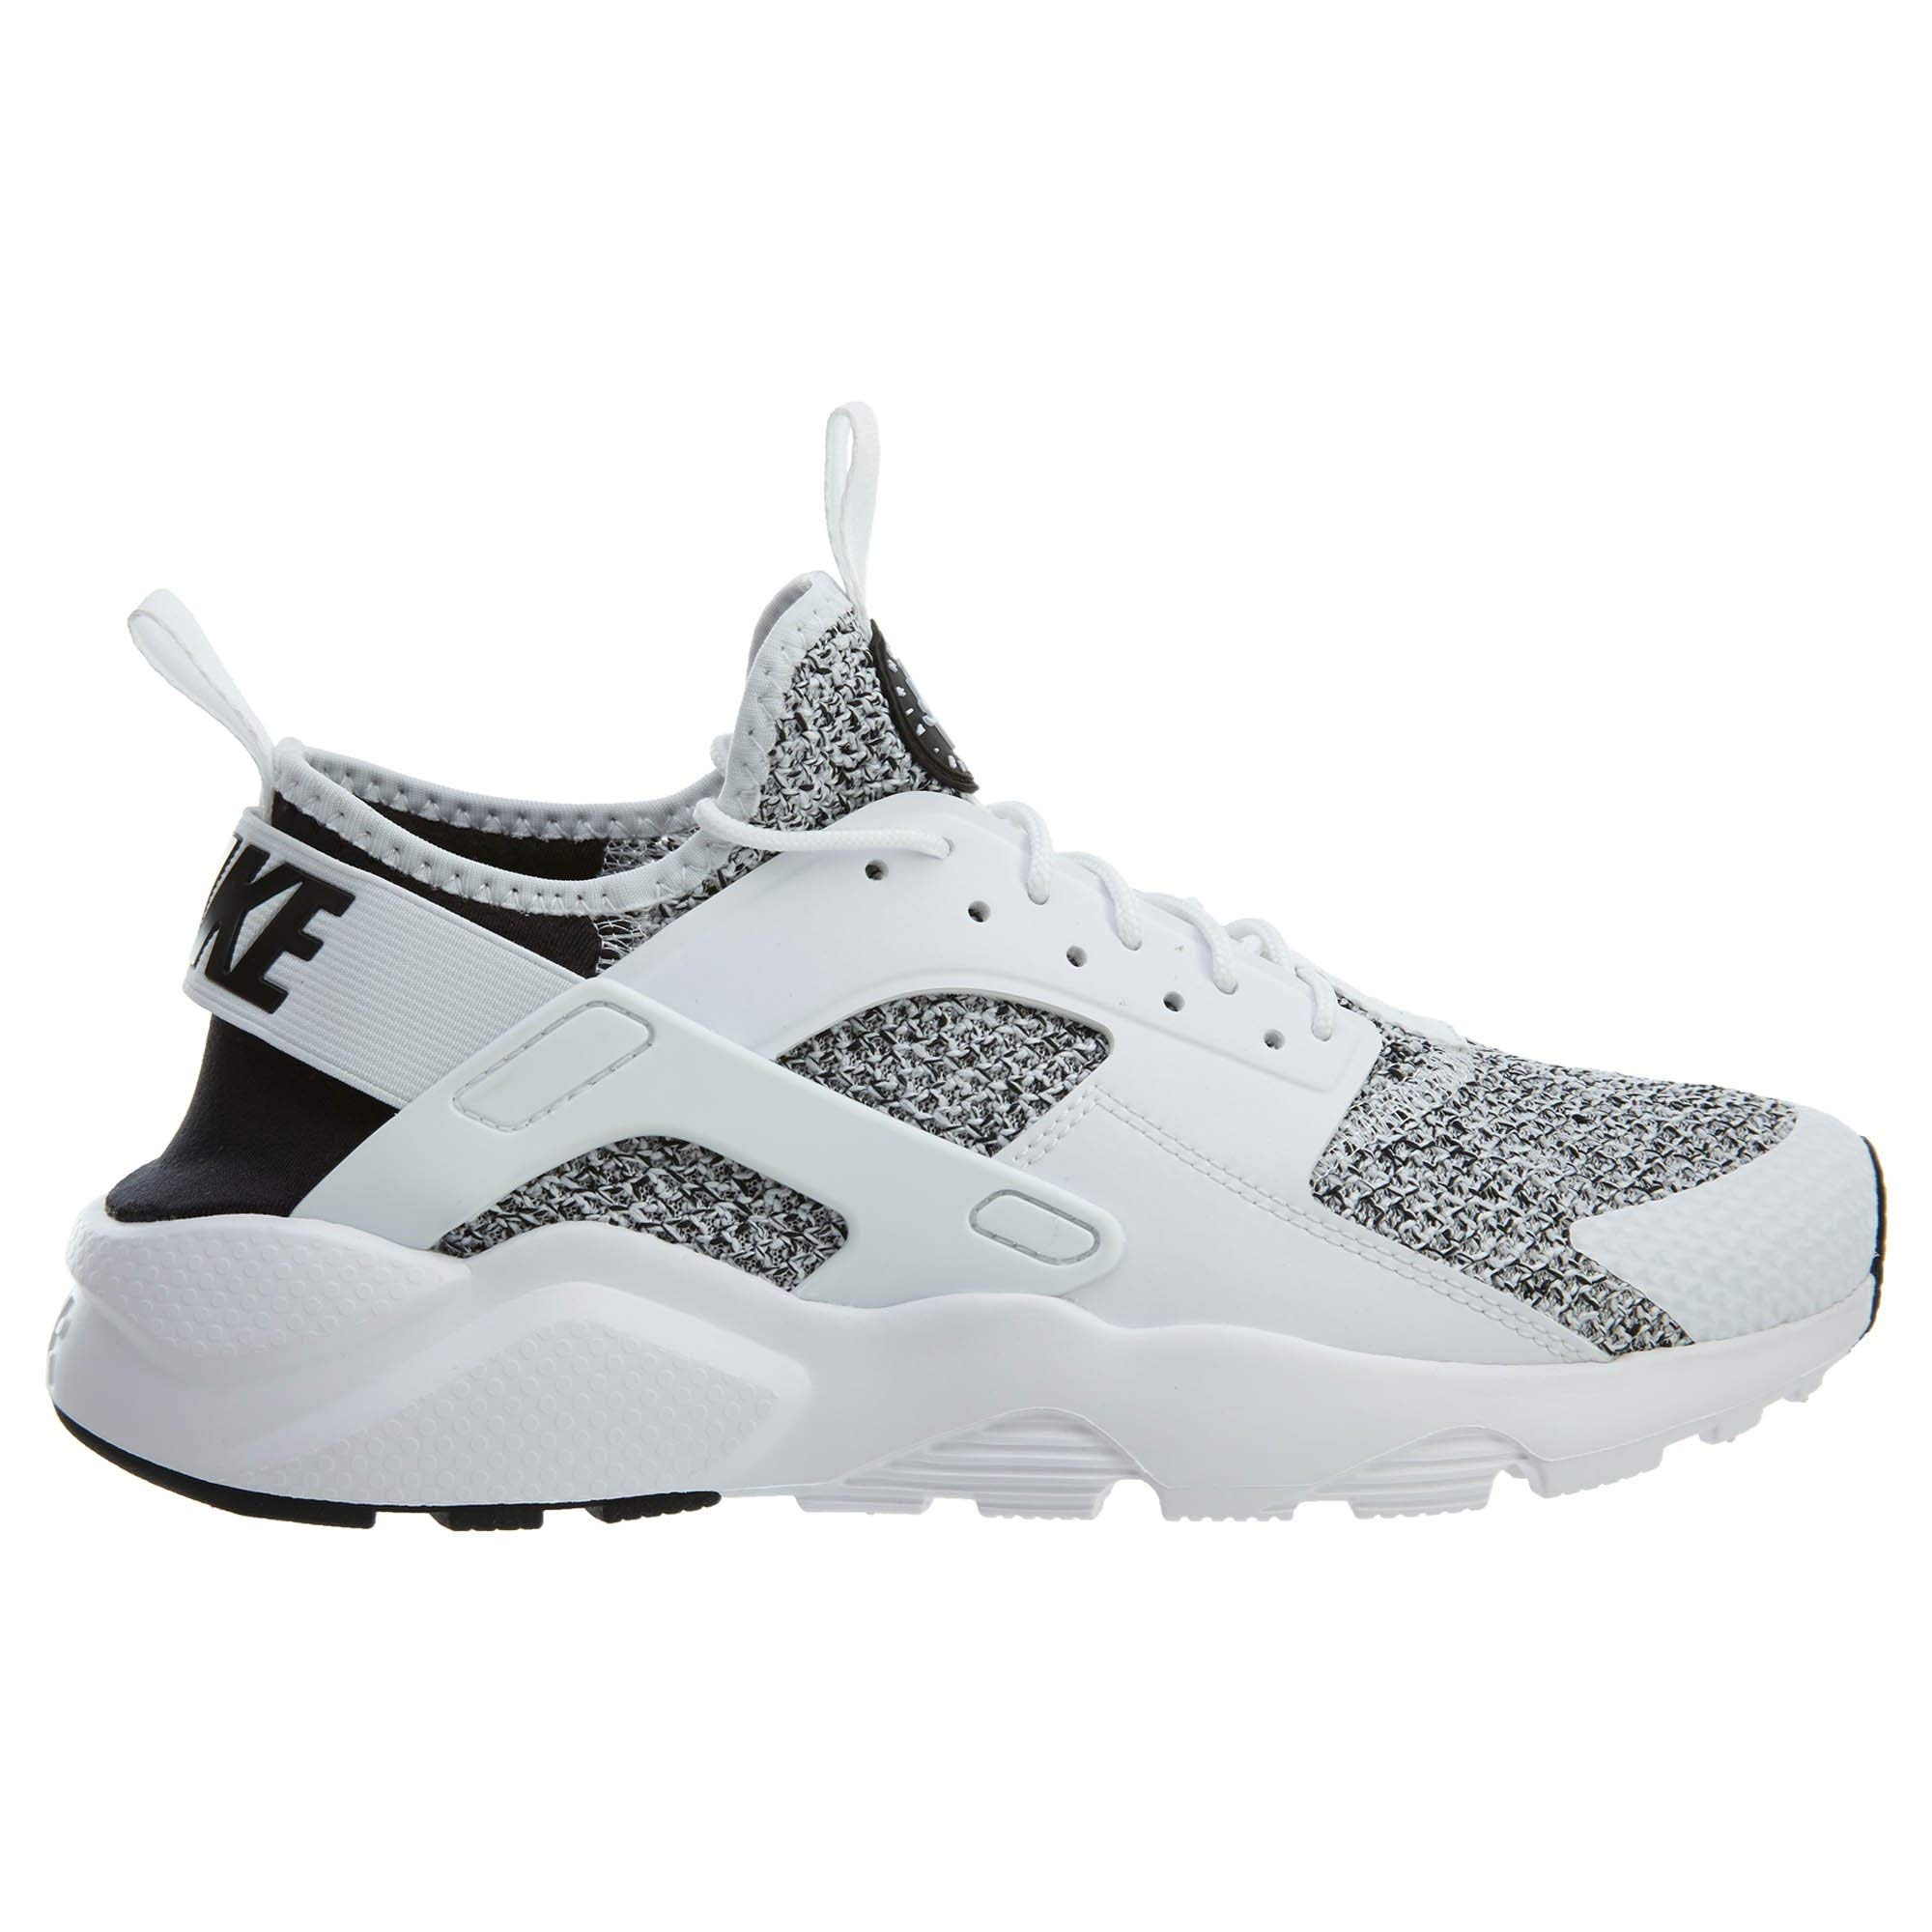 2af03a0ea570 Galleon - Nike Mens Huarache Ultra SE Running Shoes Black White 875841-009  Size 13